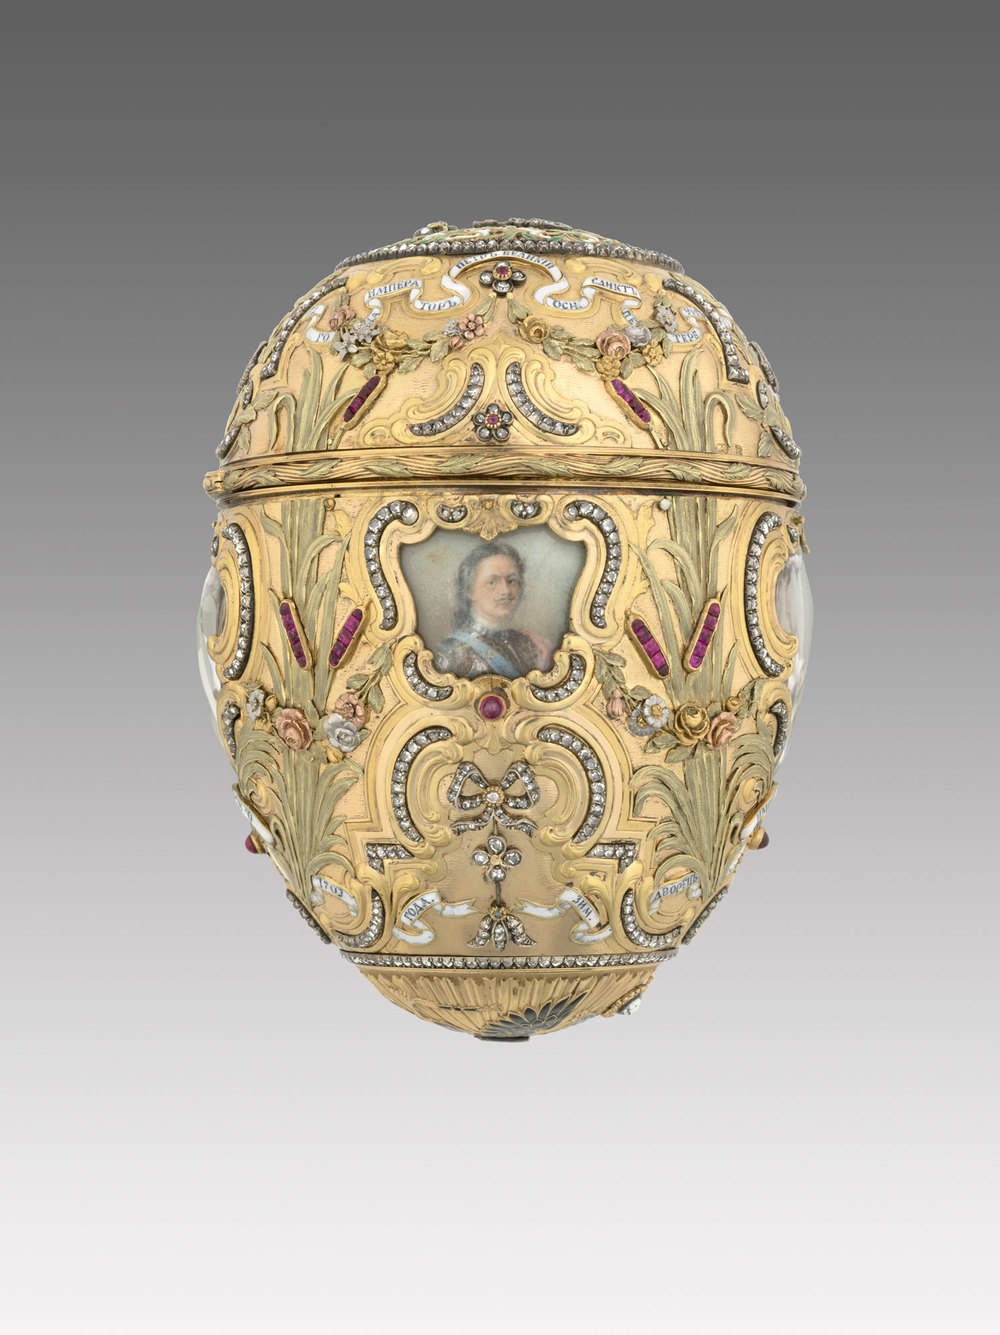 Carl Fabergé (1846–1920), Fabergé workshop, Mikhail Perkhin (workmaster). Imperial Peter the Great Easter Egg, 1903. Egg: gold, platinum, silver gilt, diamonds, rubies, enamel, watercolor, ivory, rock crystal. Surprise: gilt bronze, sapphire. Egg: 12 x 7.9 cm, Surprise: 4.7 x 6.9 cm, Stand: 7.7 x 6.9 cm, Virginia Museum of Fine Arts, Bequest of Lillian Thomas Pratt. This was featured in Faberge, Jeweller to the Czars last year at the Montreal Museum of Fine Arts. (Photo courtesy The Montreal Museum of Fine Arts)